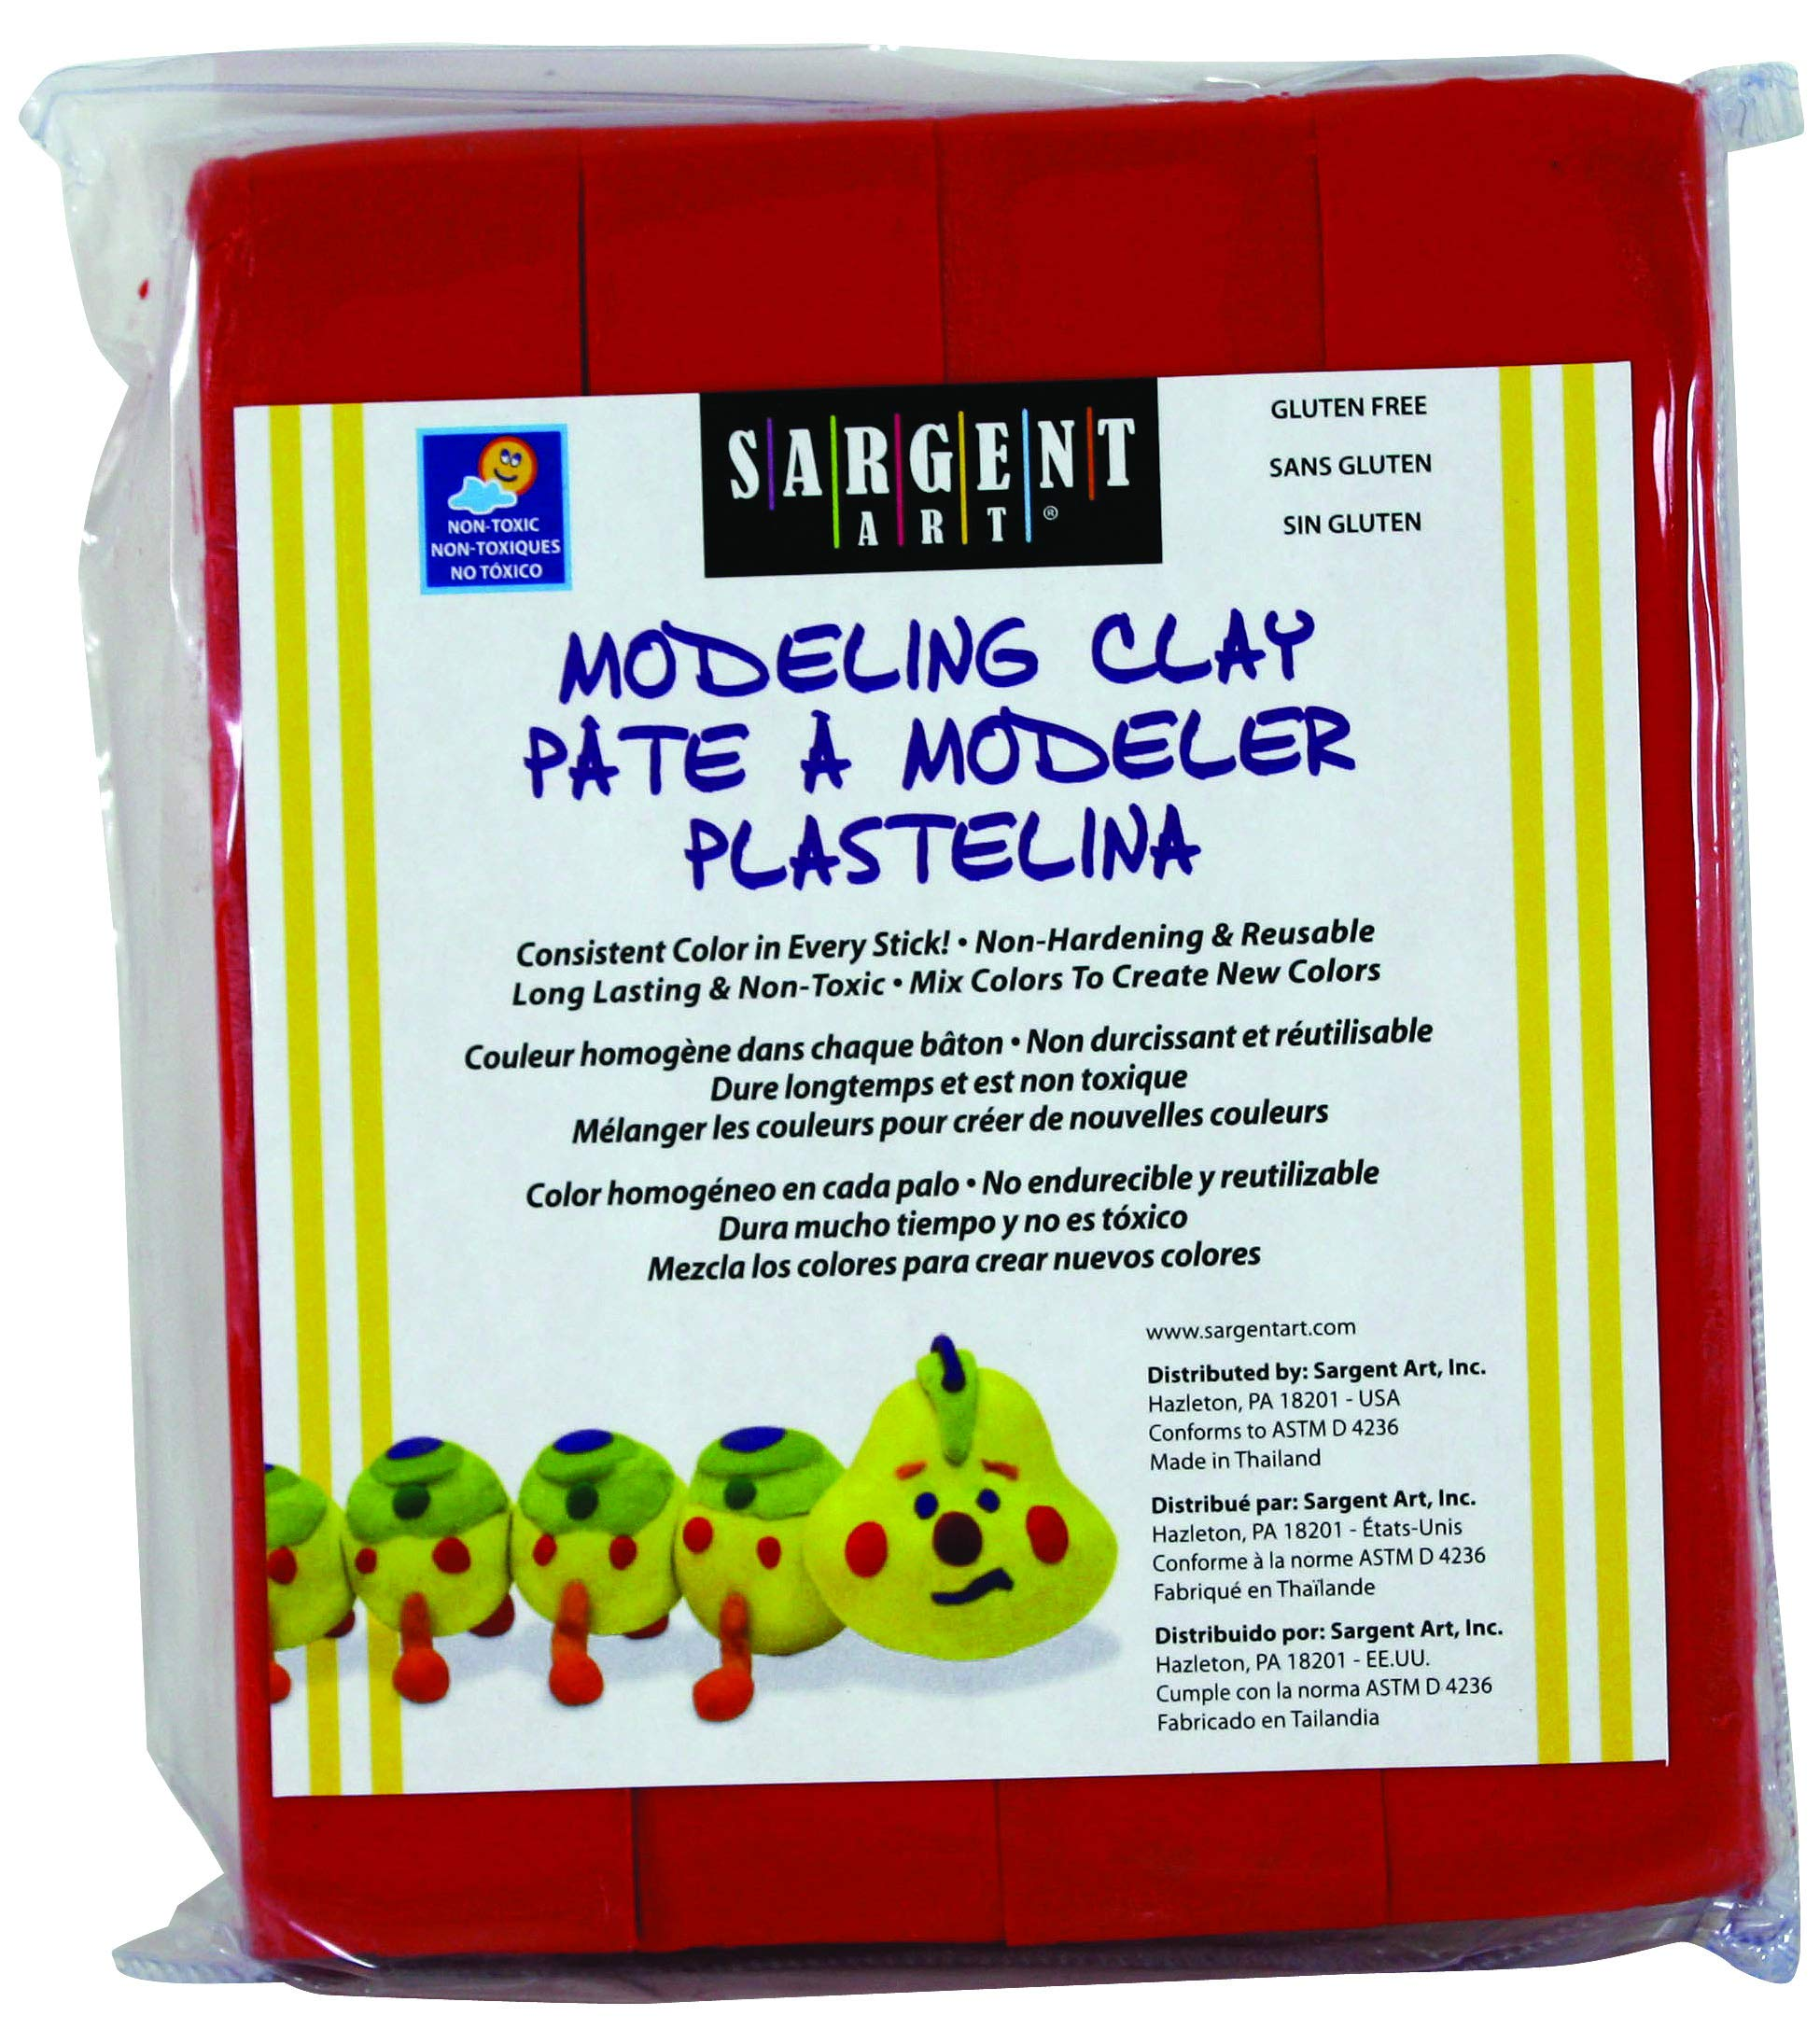 Sargent Art 22-4020 1-Pound Solid Color Modeling Clay, Red